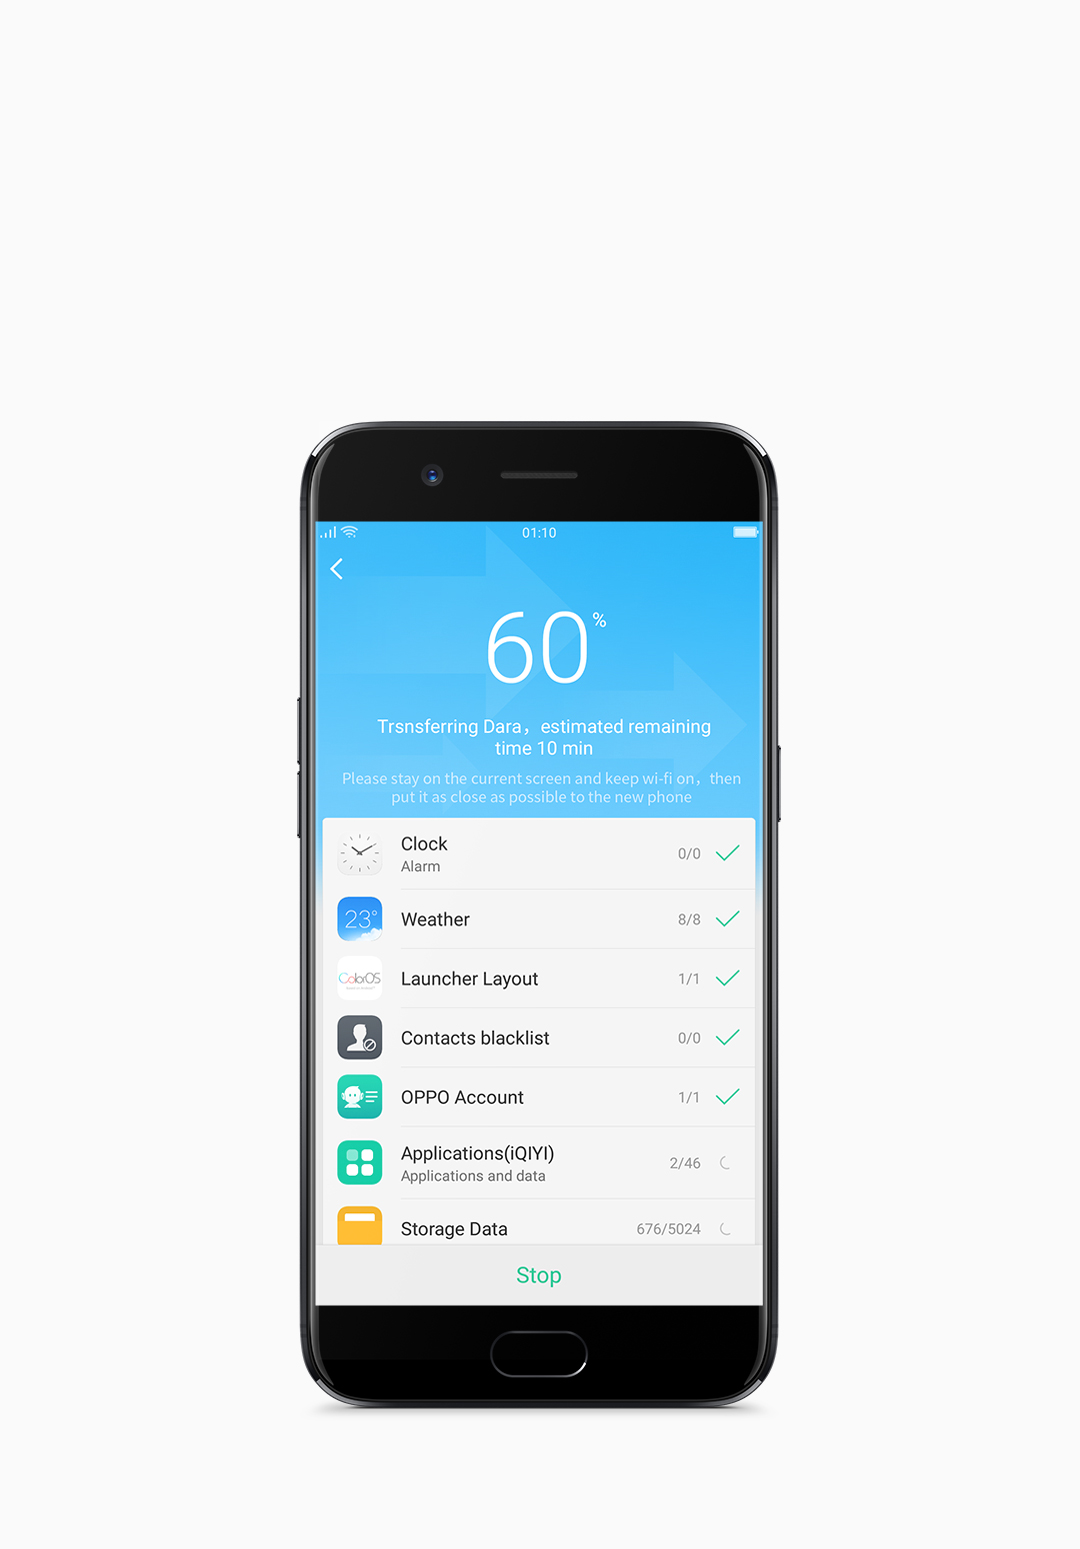 ColorOS 3.1 supports effortless OPPO share instant transfers via Bluetooth.